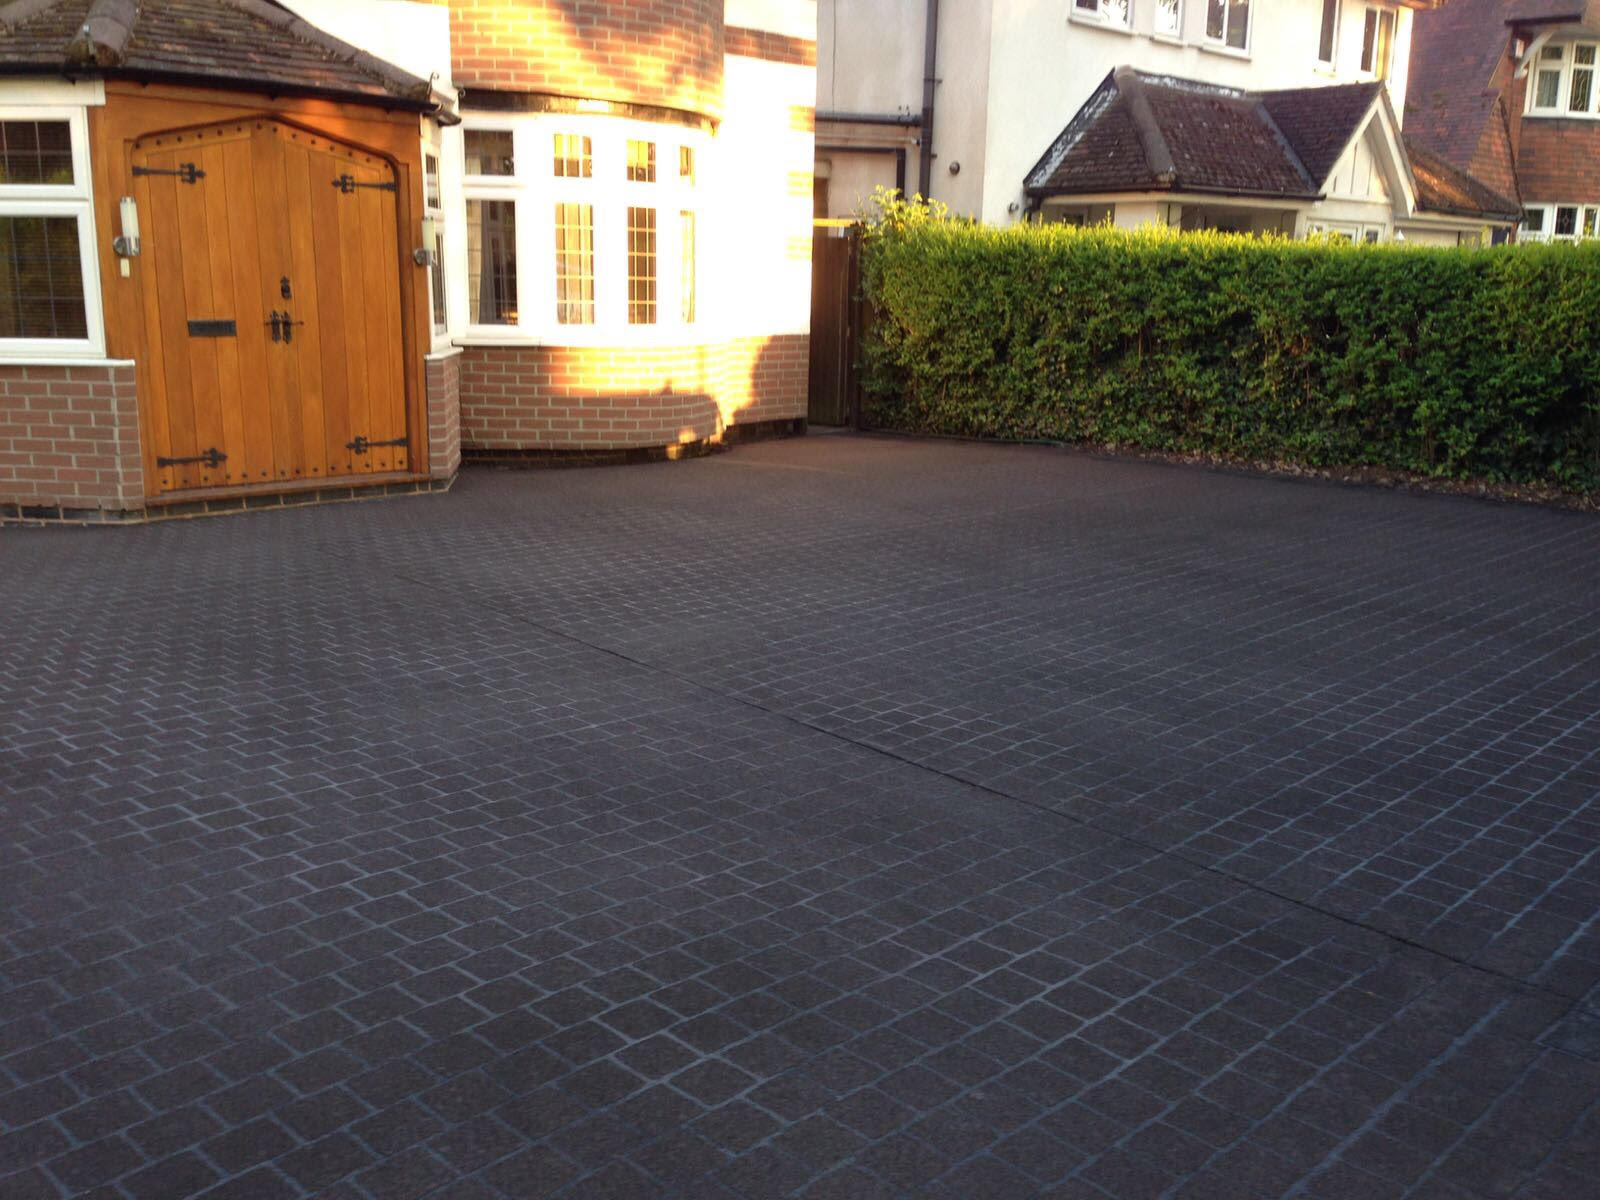 Driveway Services - Prestige Concrete UK - Based In Leicestershire